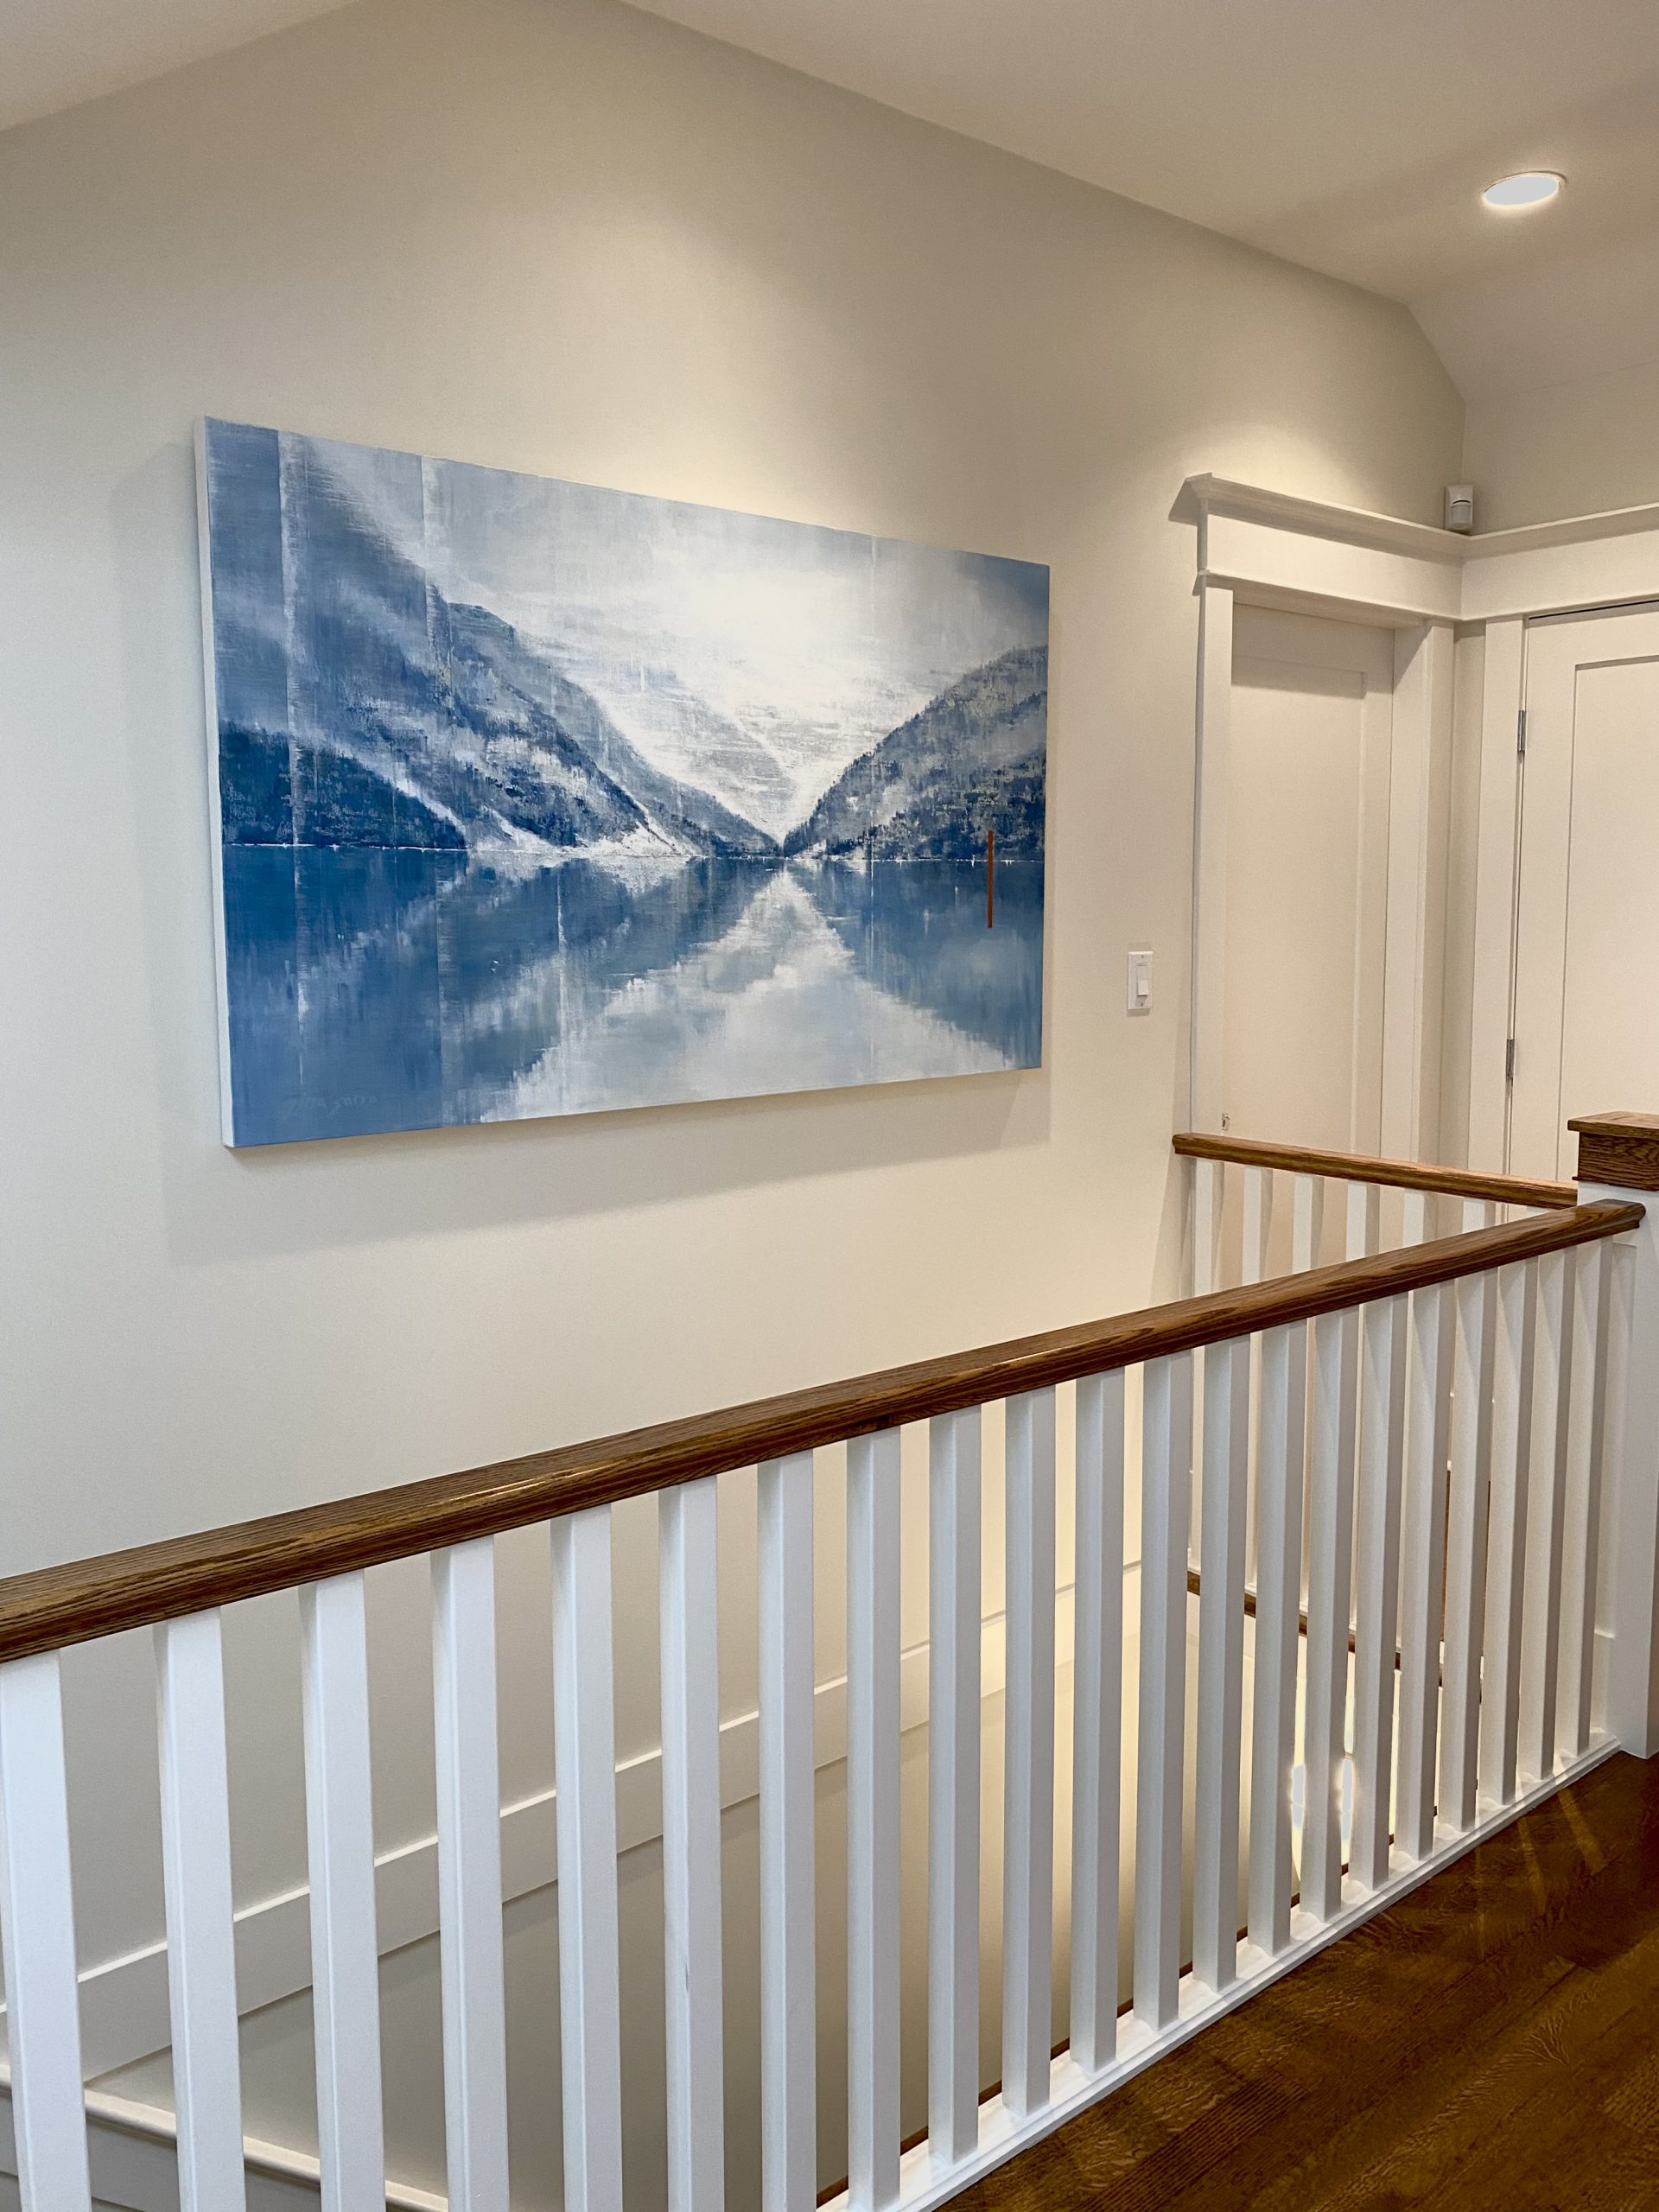 Moments We Share Together, installed acrylic landscape painting by Gina Sarro | Effusion Art Gallery + Cast Glass Studio, Invermere BC